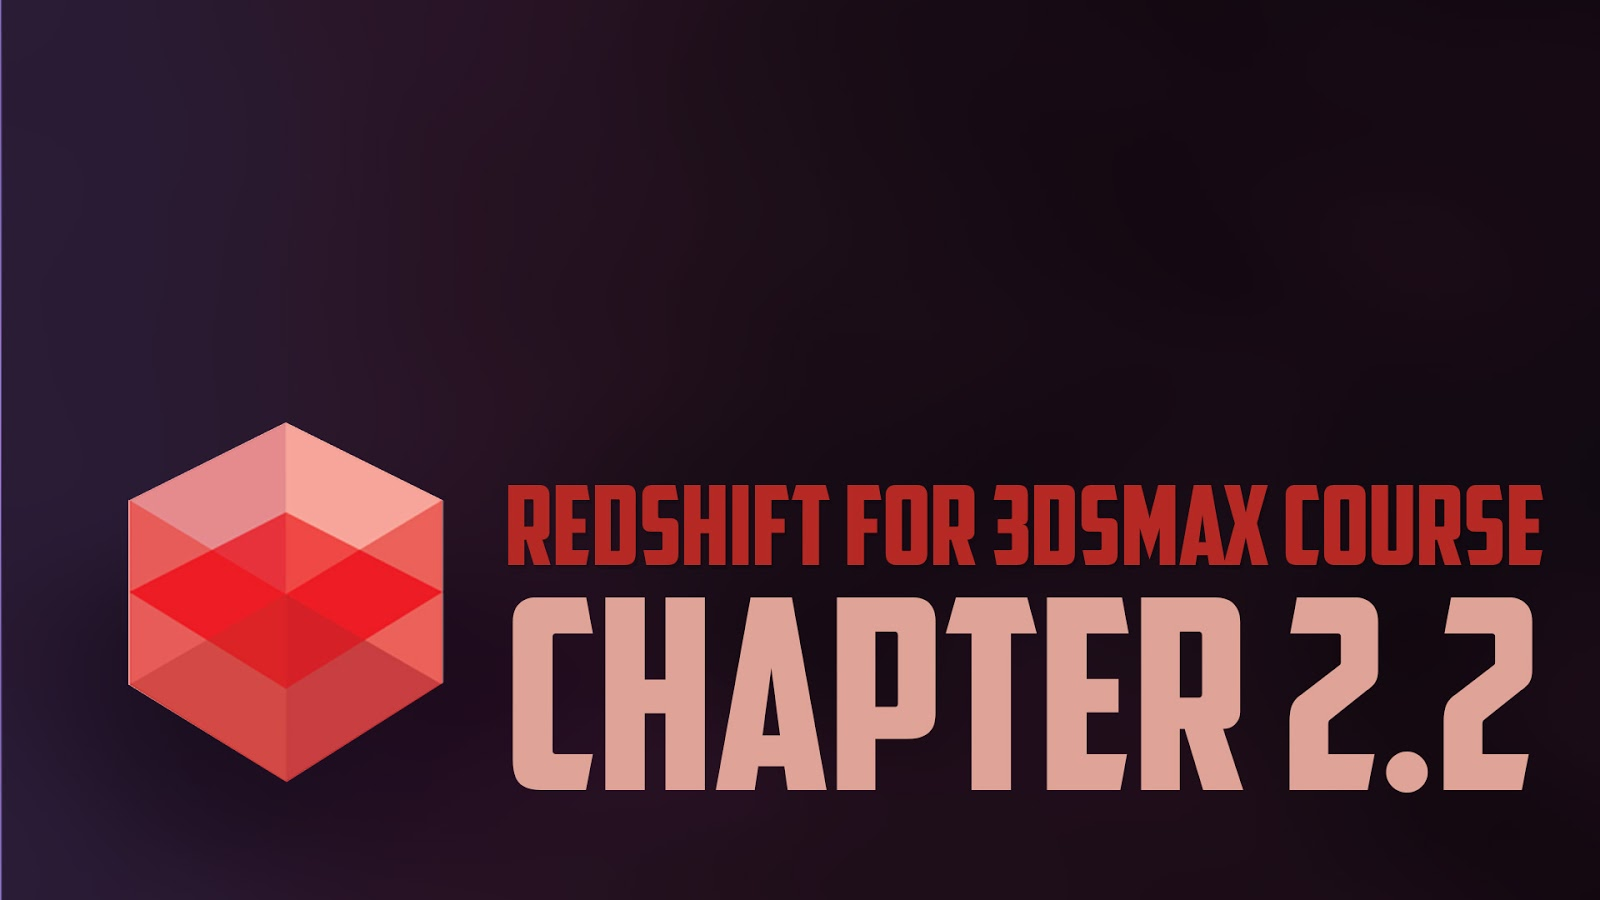 redshift_intro22.jpg